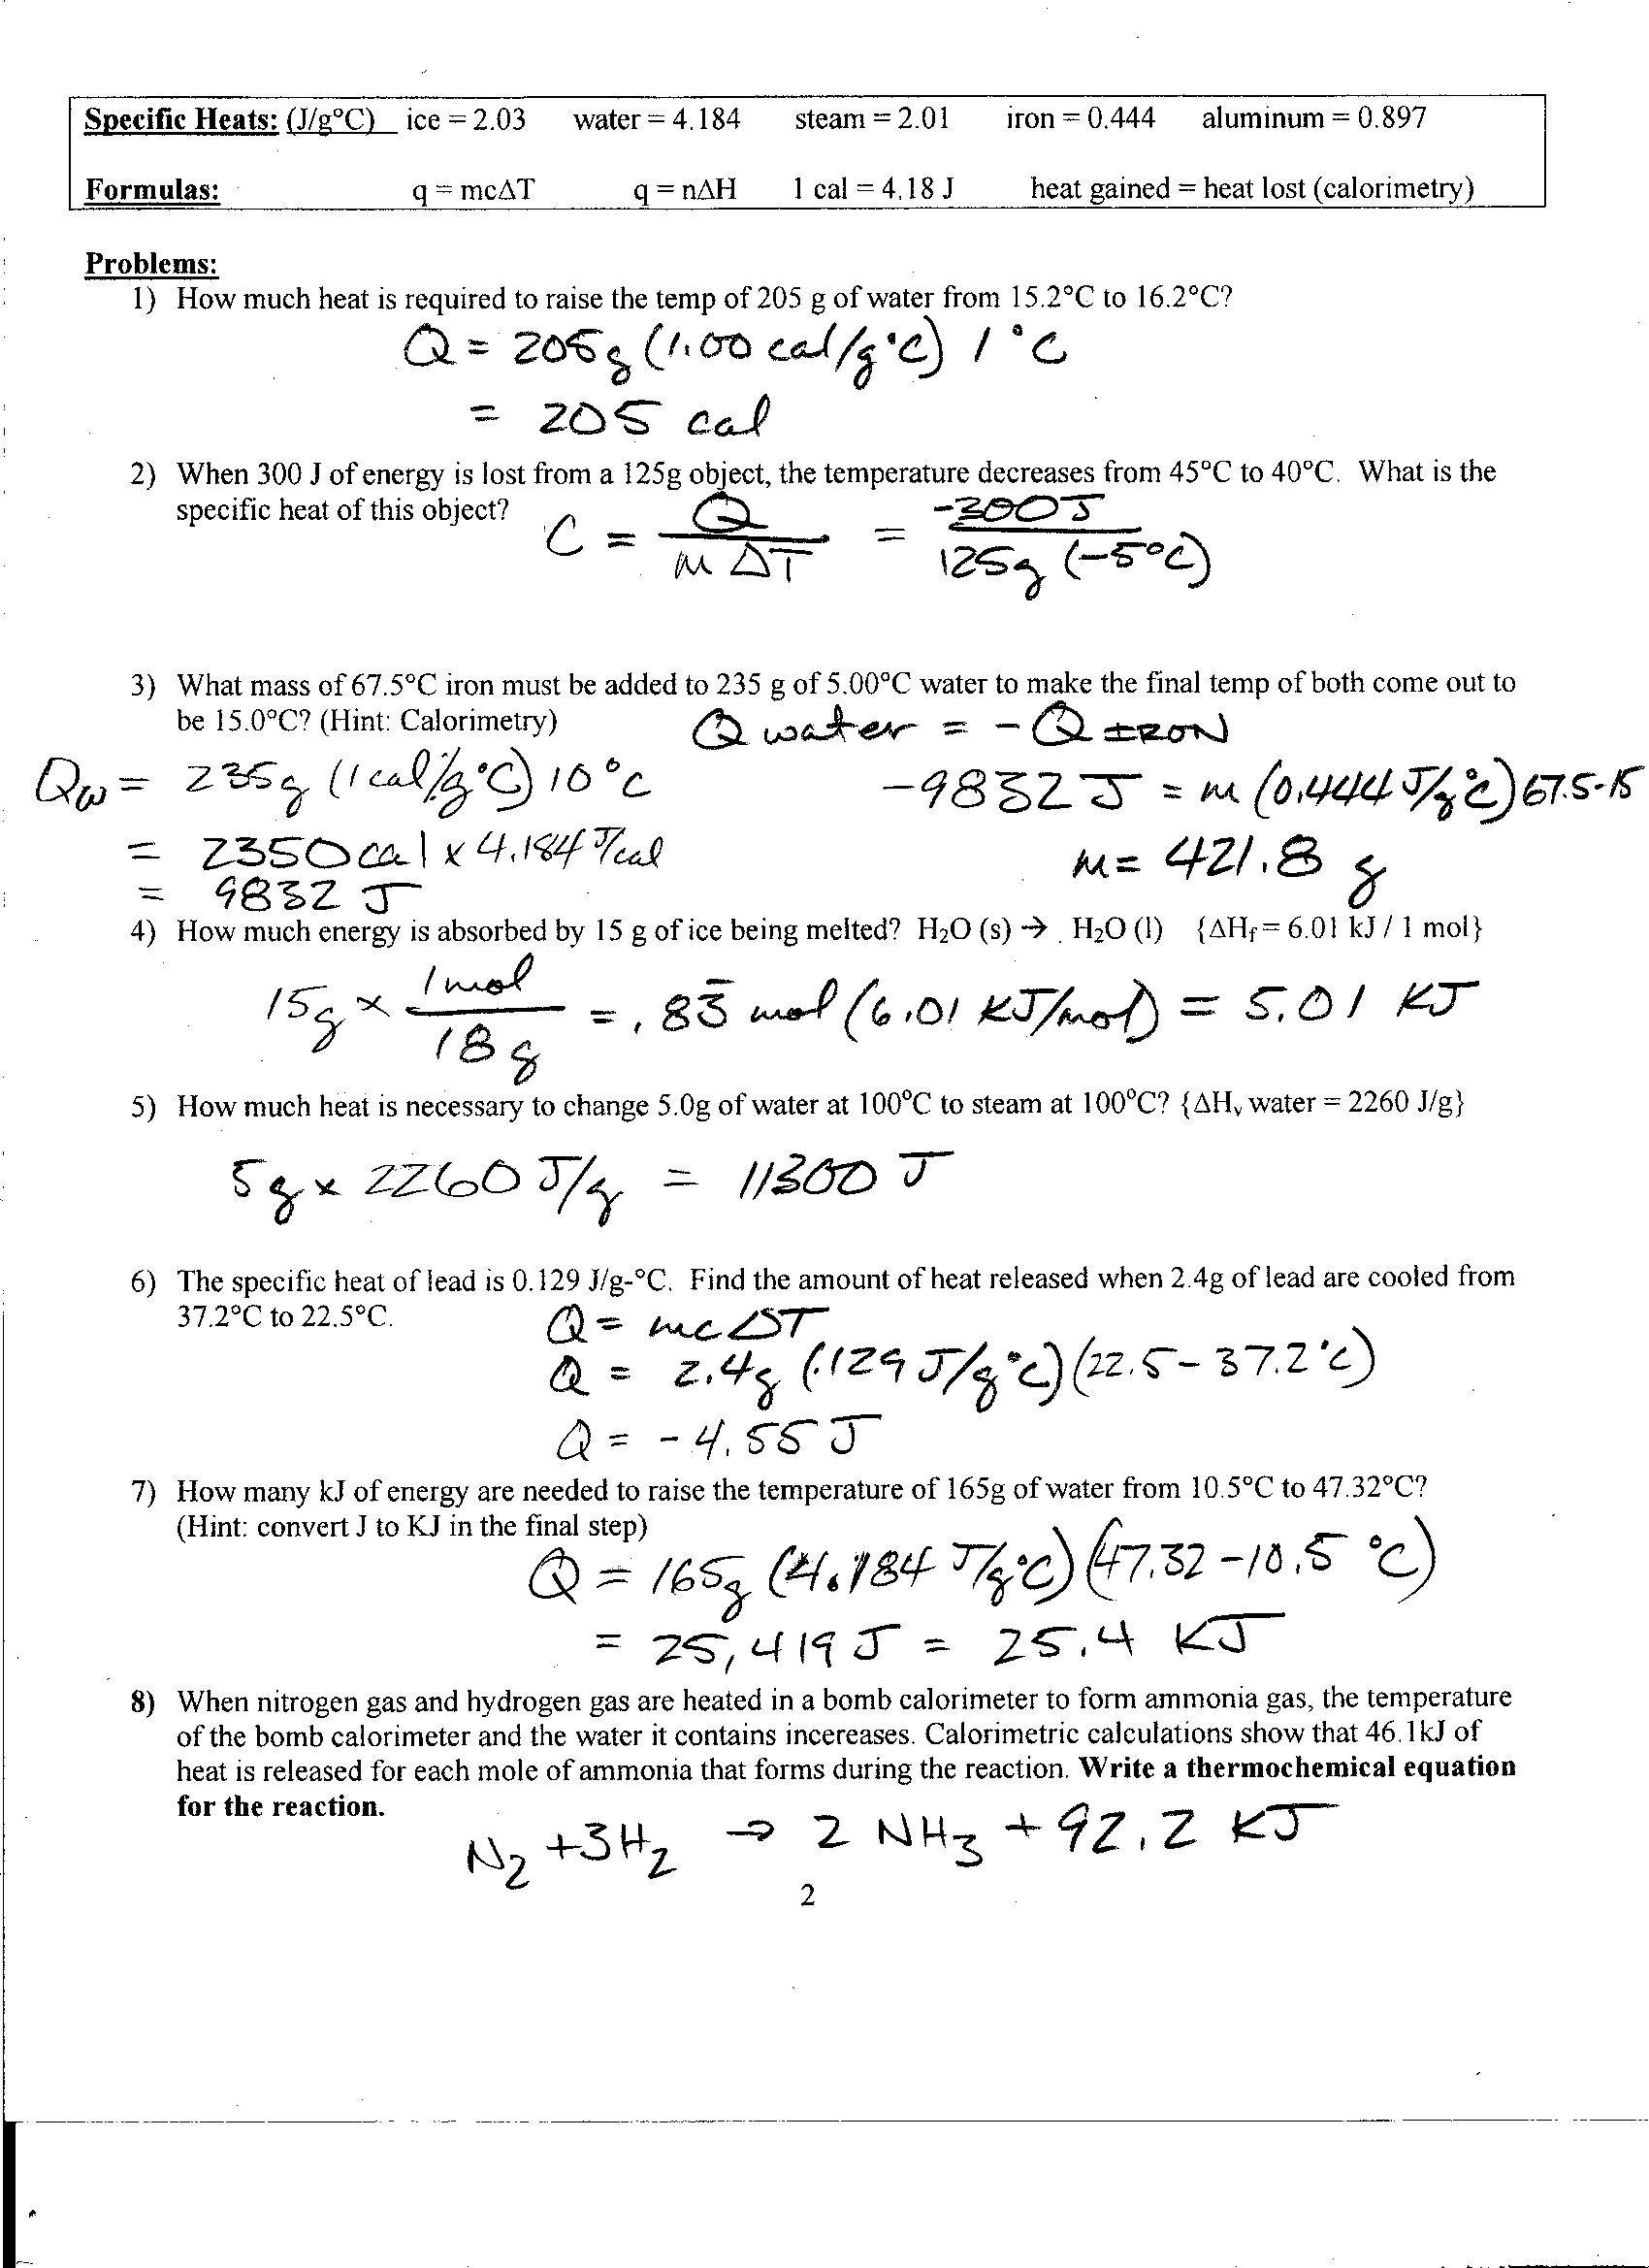 Specific Heat Worksheet Answers